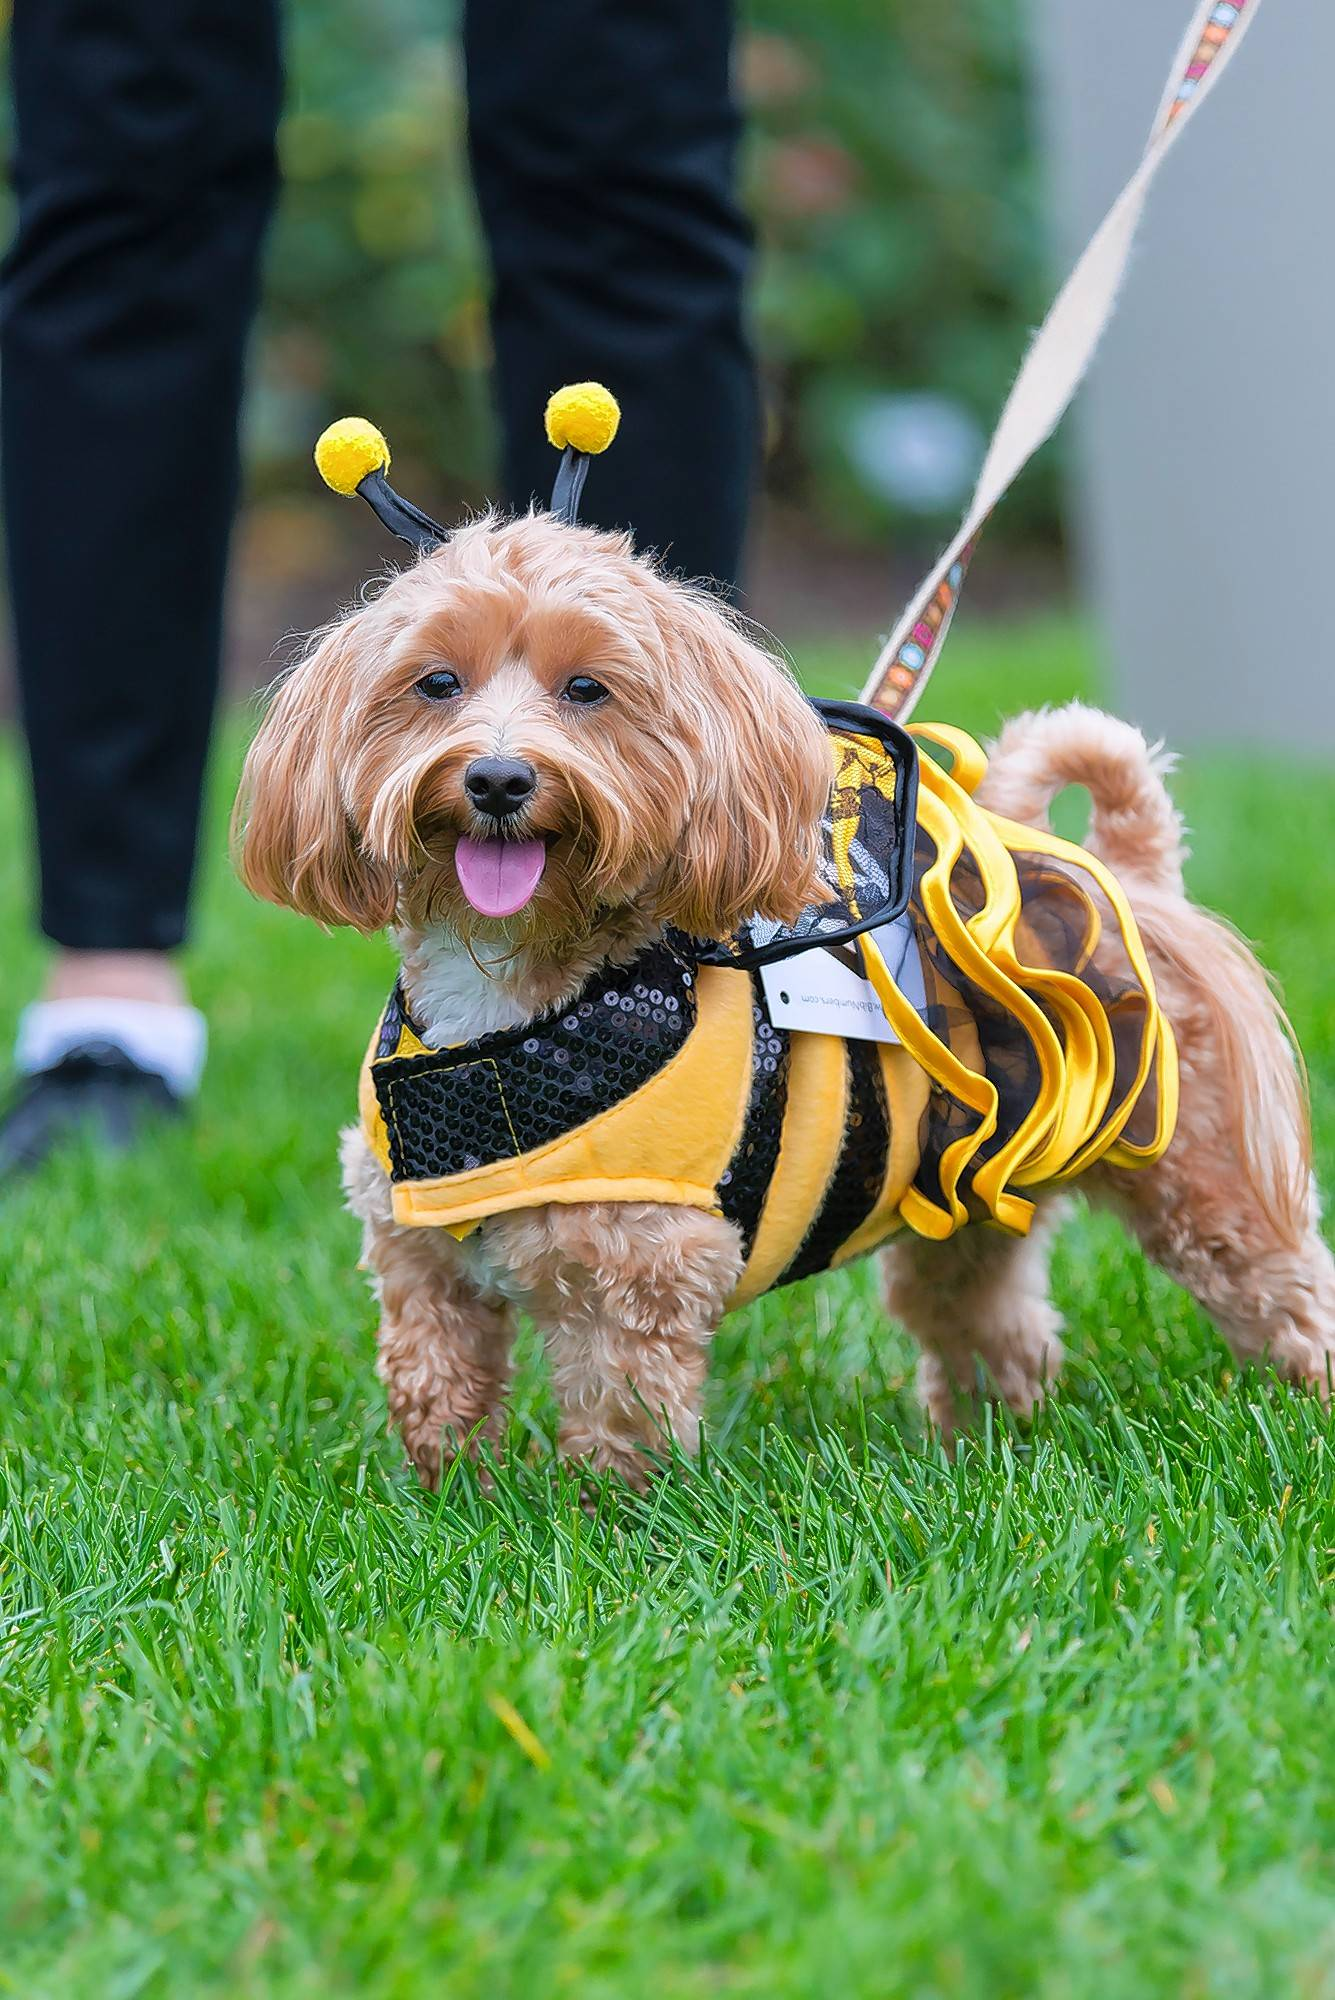 Costumed canines compete for prizes Saturday at the Spooky Pooch Parade at the Chicago Botanic Garden in Glencoe.